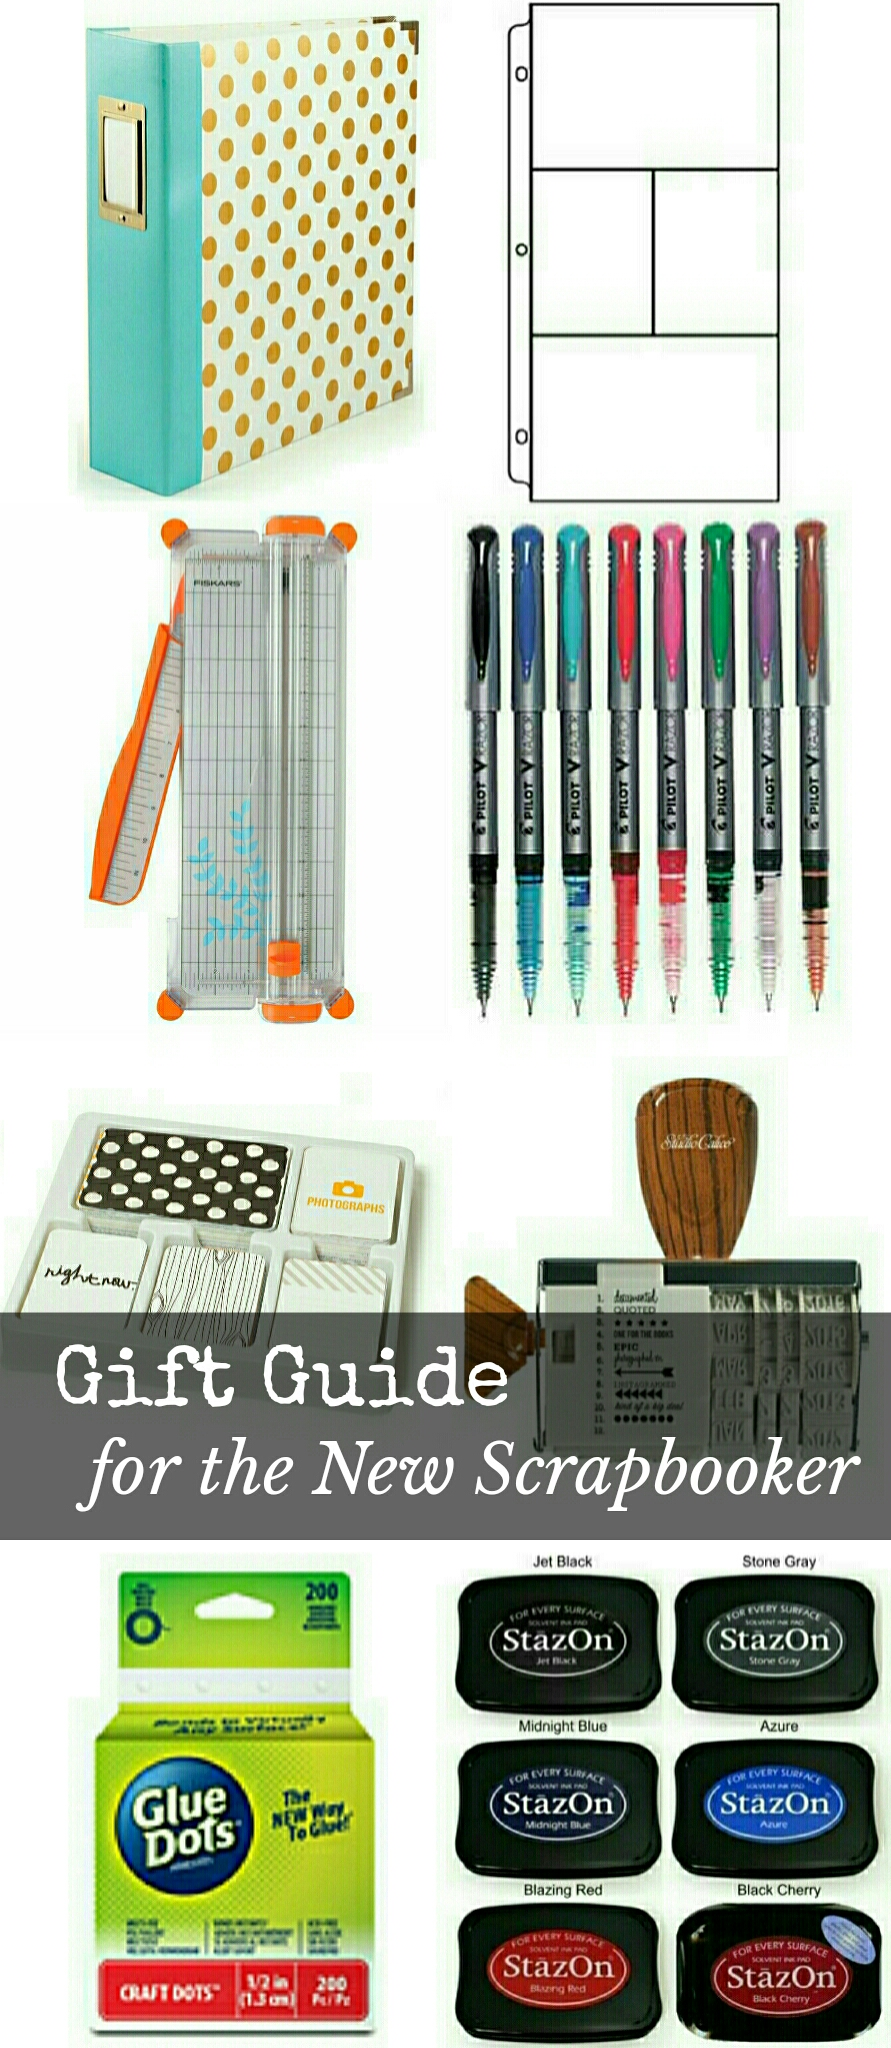 gift guide for the new scrapbooker